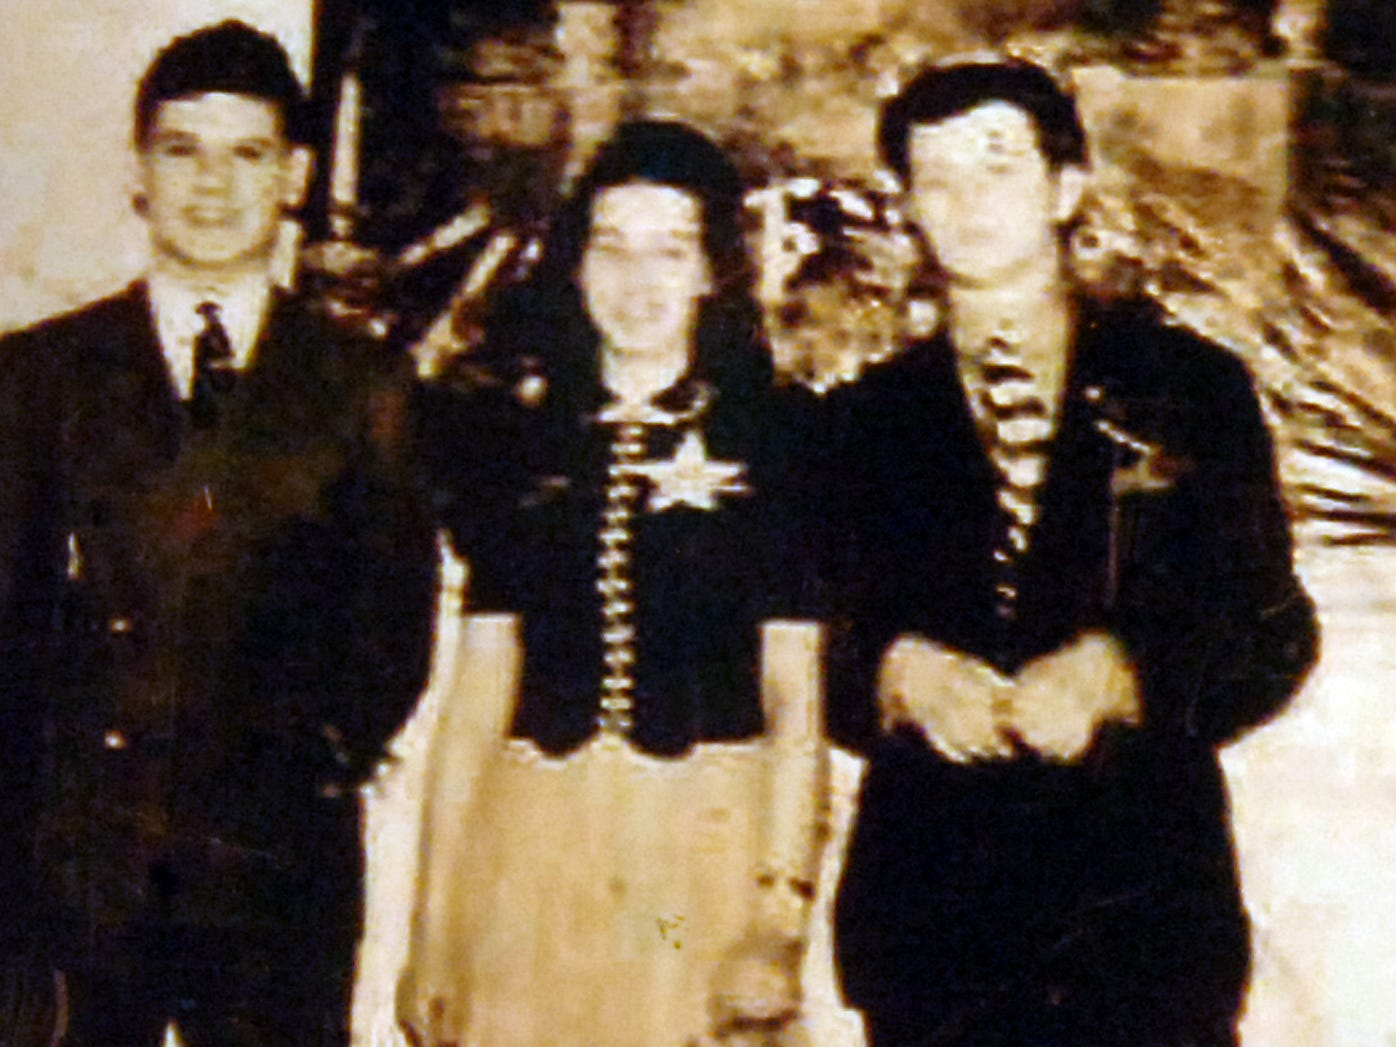 In the middle is Ann Small Niess at her 16th birthday party in 1939 in what is now the Elmwood Mansion. To her left is childhood friend Dan Meckley and to her right, a former boyfriend, the late Mark Shananberger.